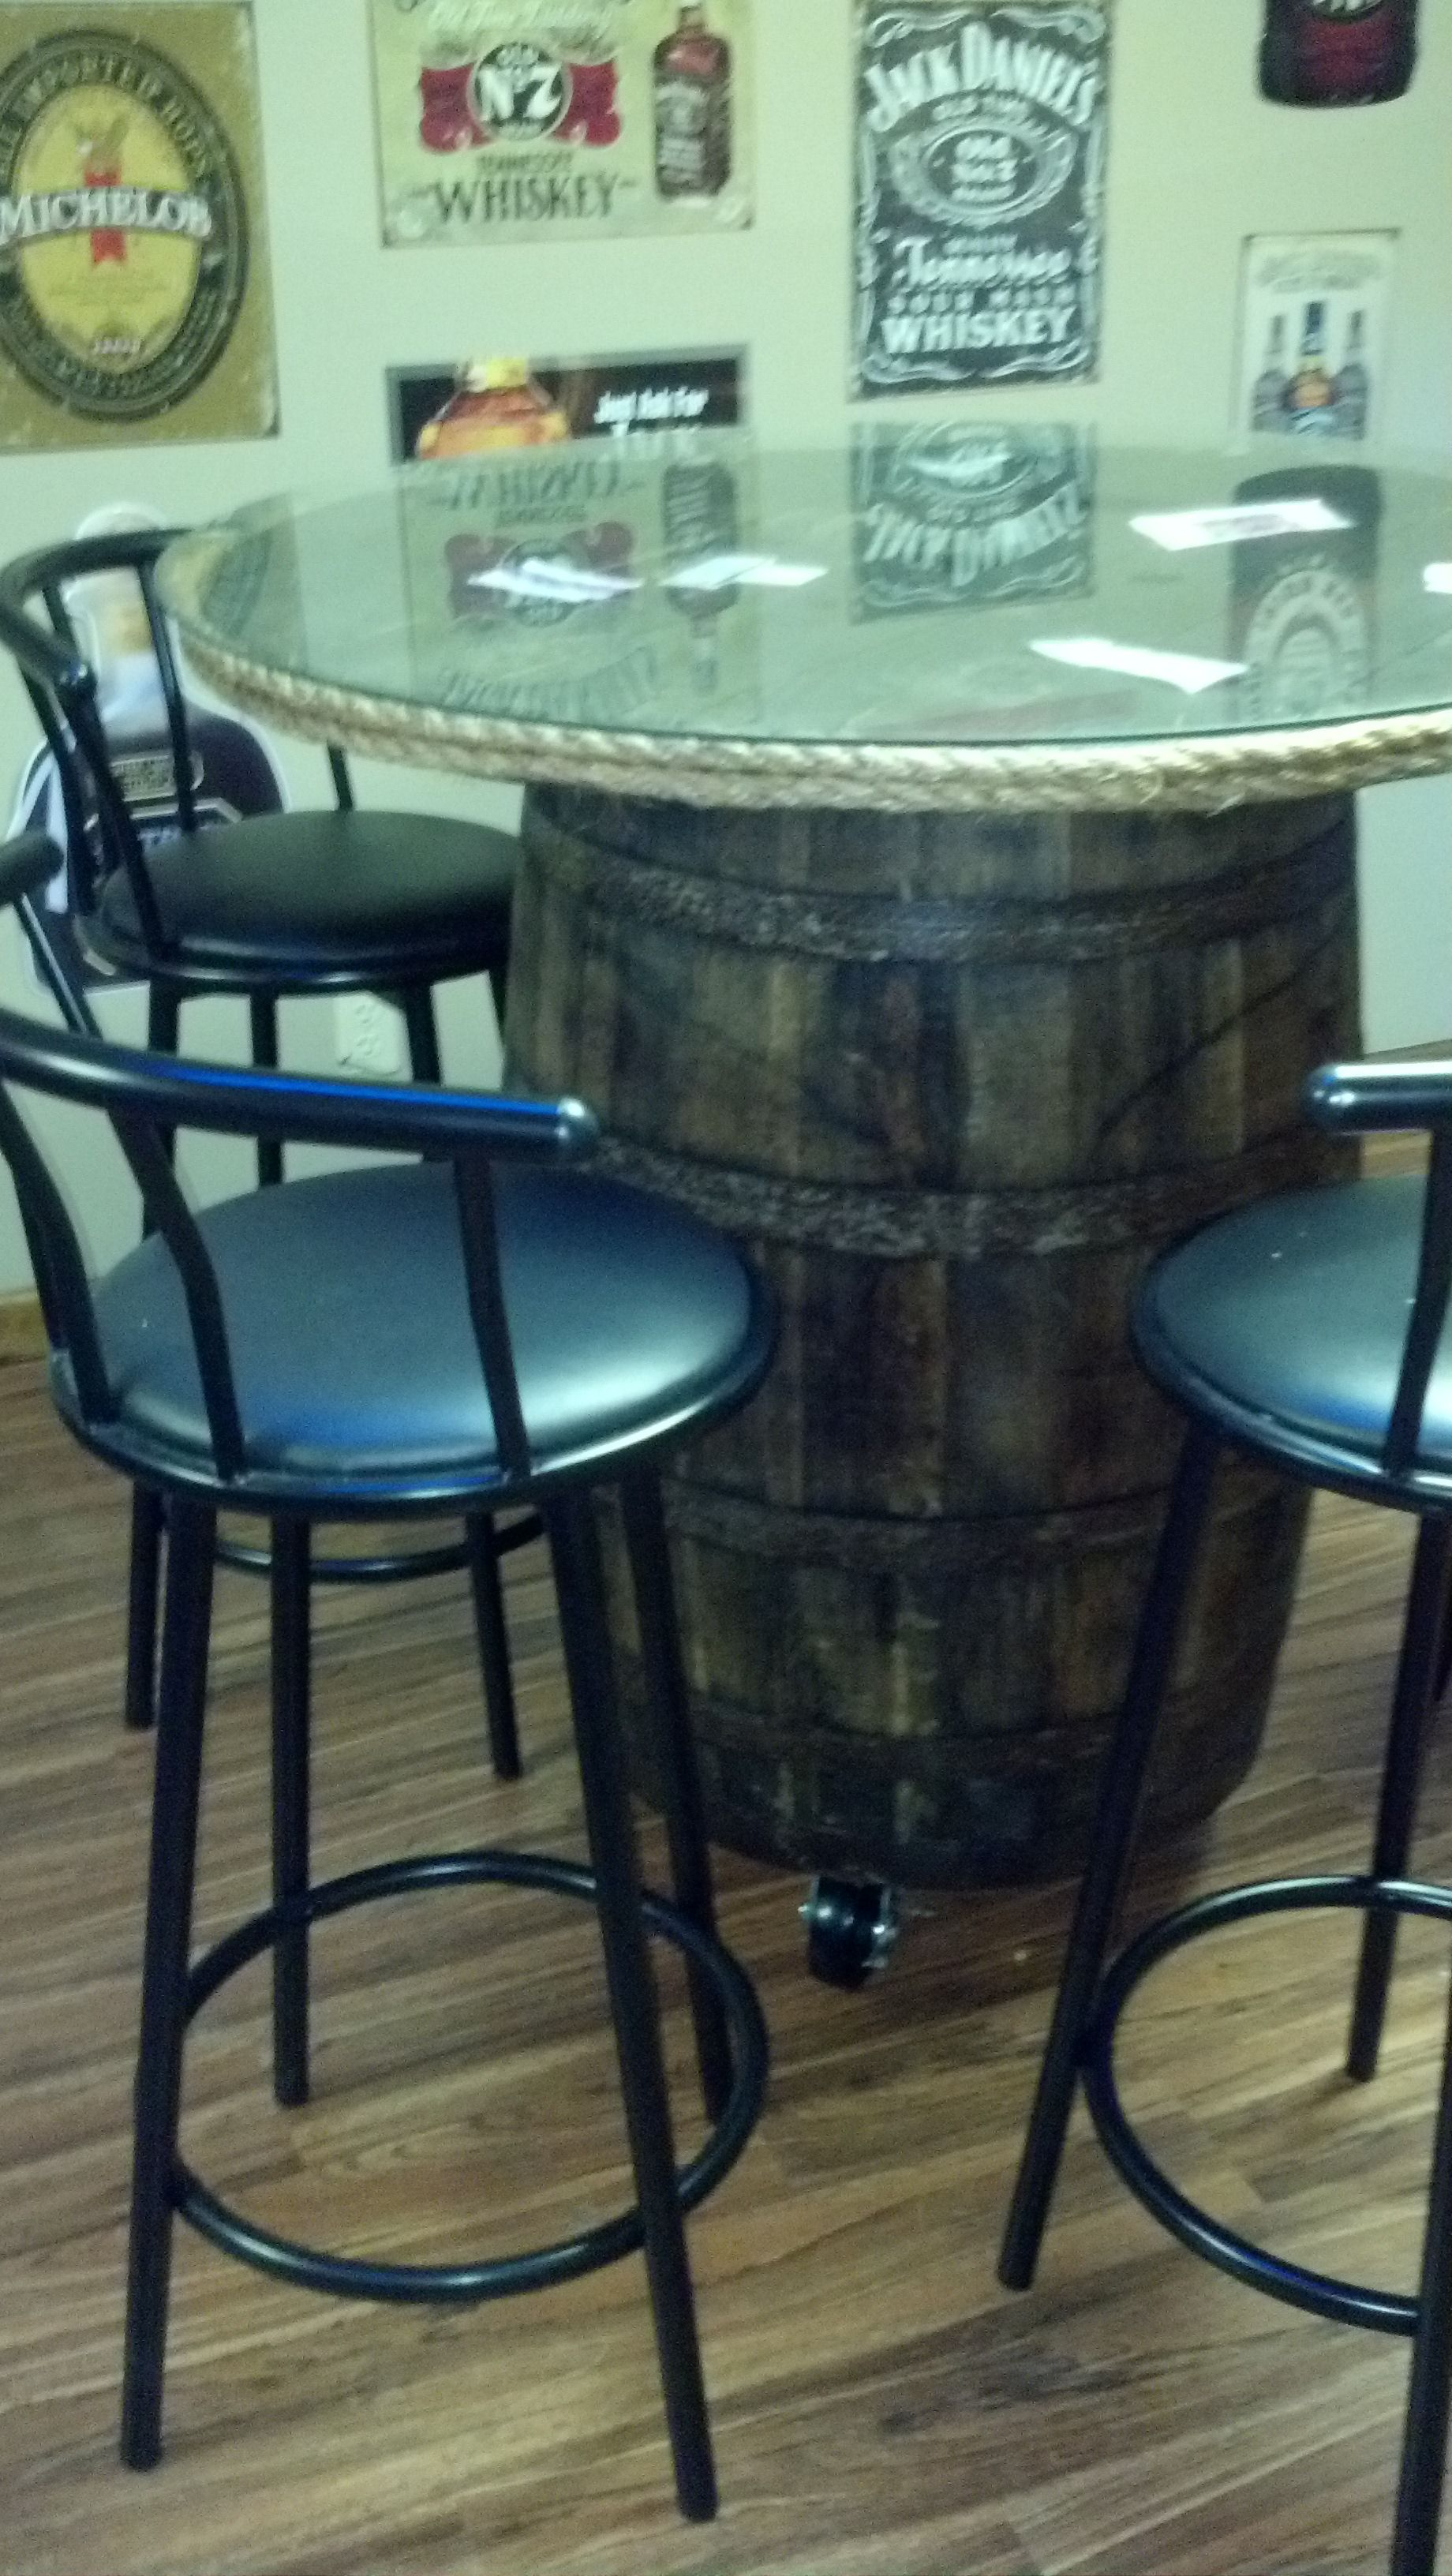 Whiskey Barrel Table Whiskey barrels